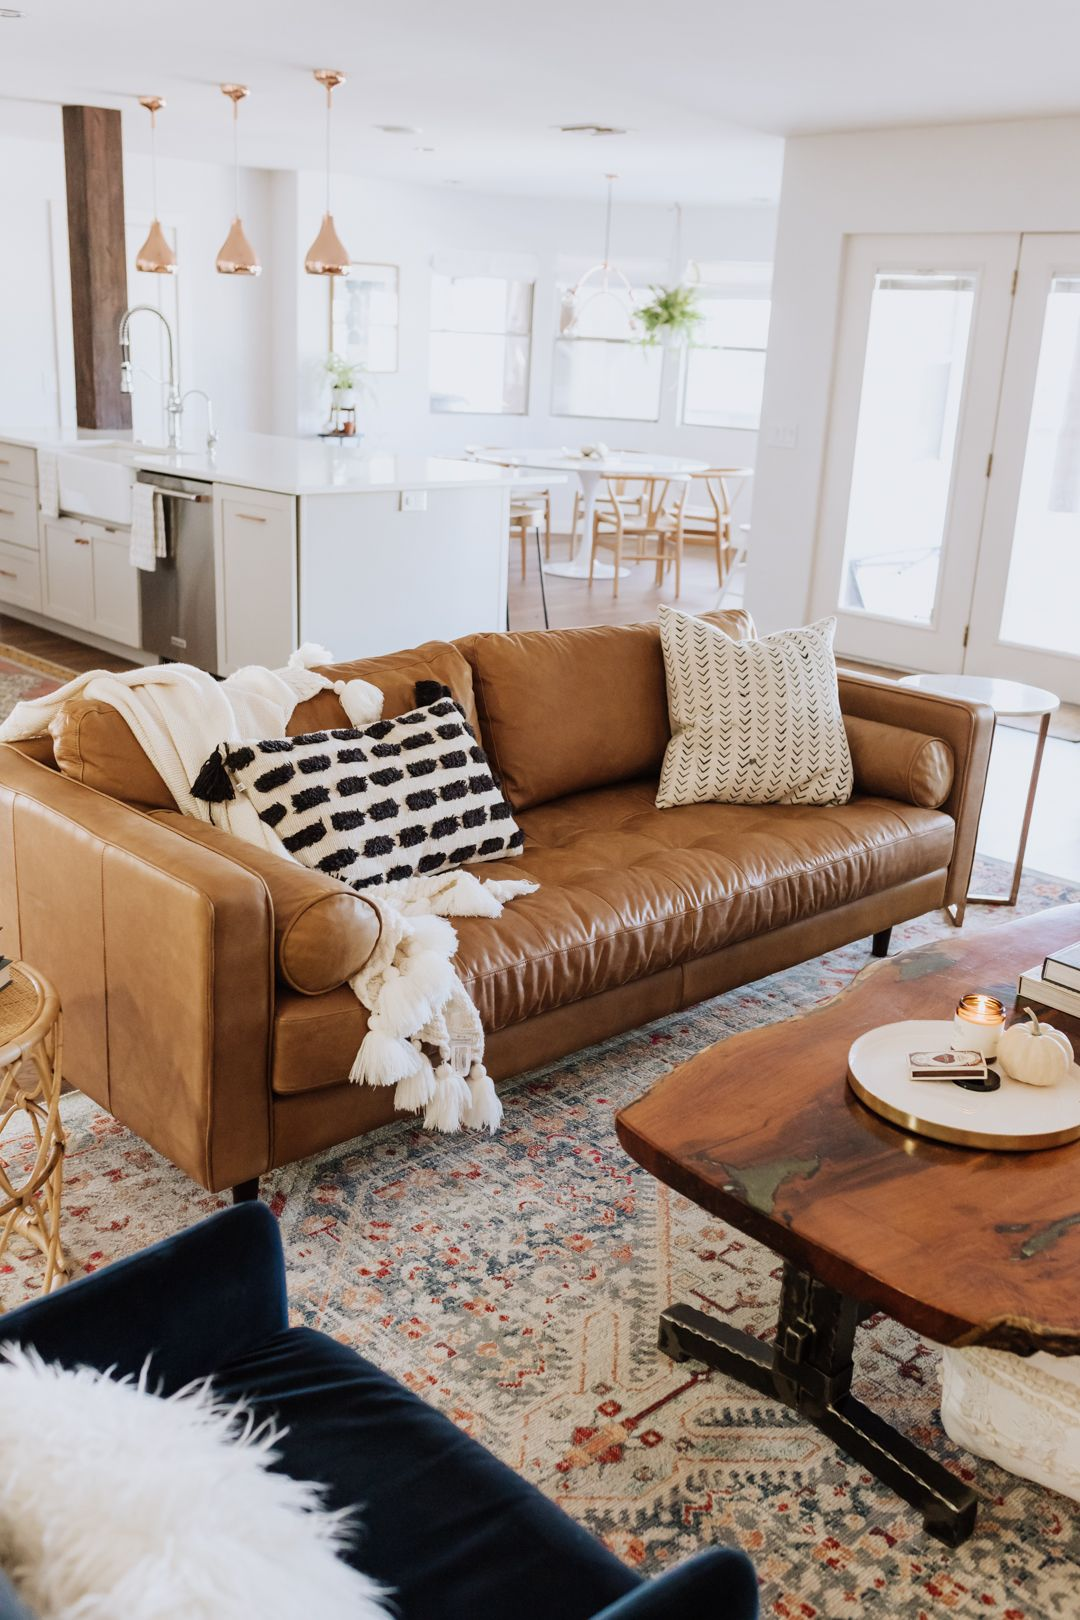 the ldl home: our living room reveal | Living room decor ...